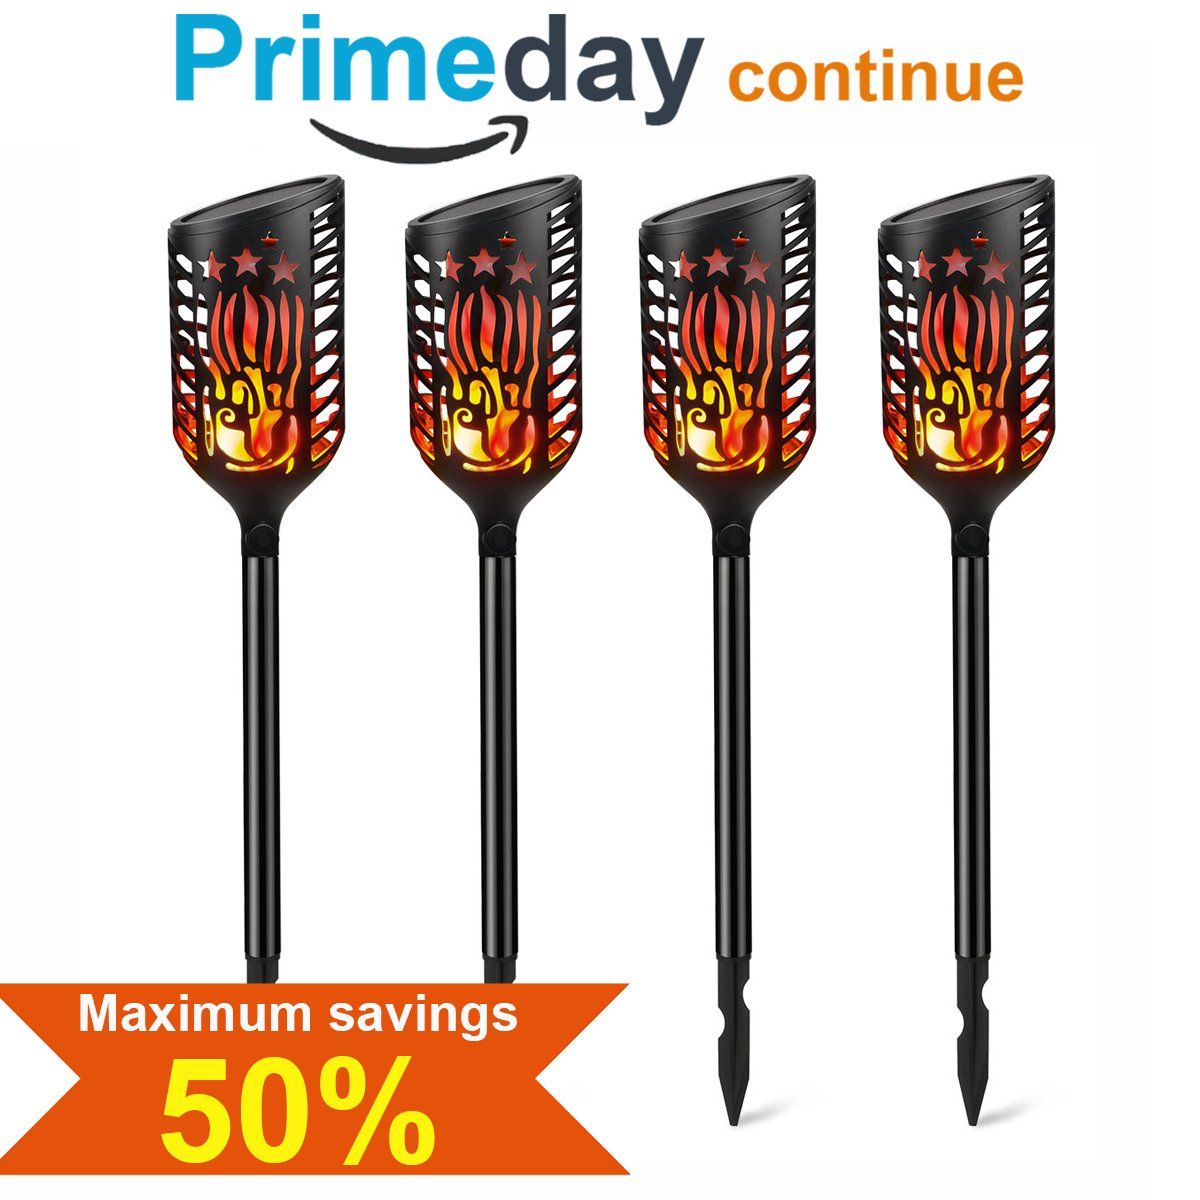 Torches Lights Outdoor, Mworld Solar Lights Waterproof Dancing Flickering Flames Path Light, 102 LEDs Landscape Lighting, Auto Dusk To Dawn Garden Light Decoration For Patio Yard Driveway (4 PCS)